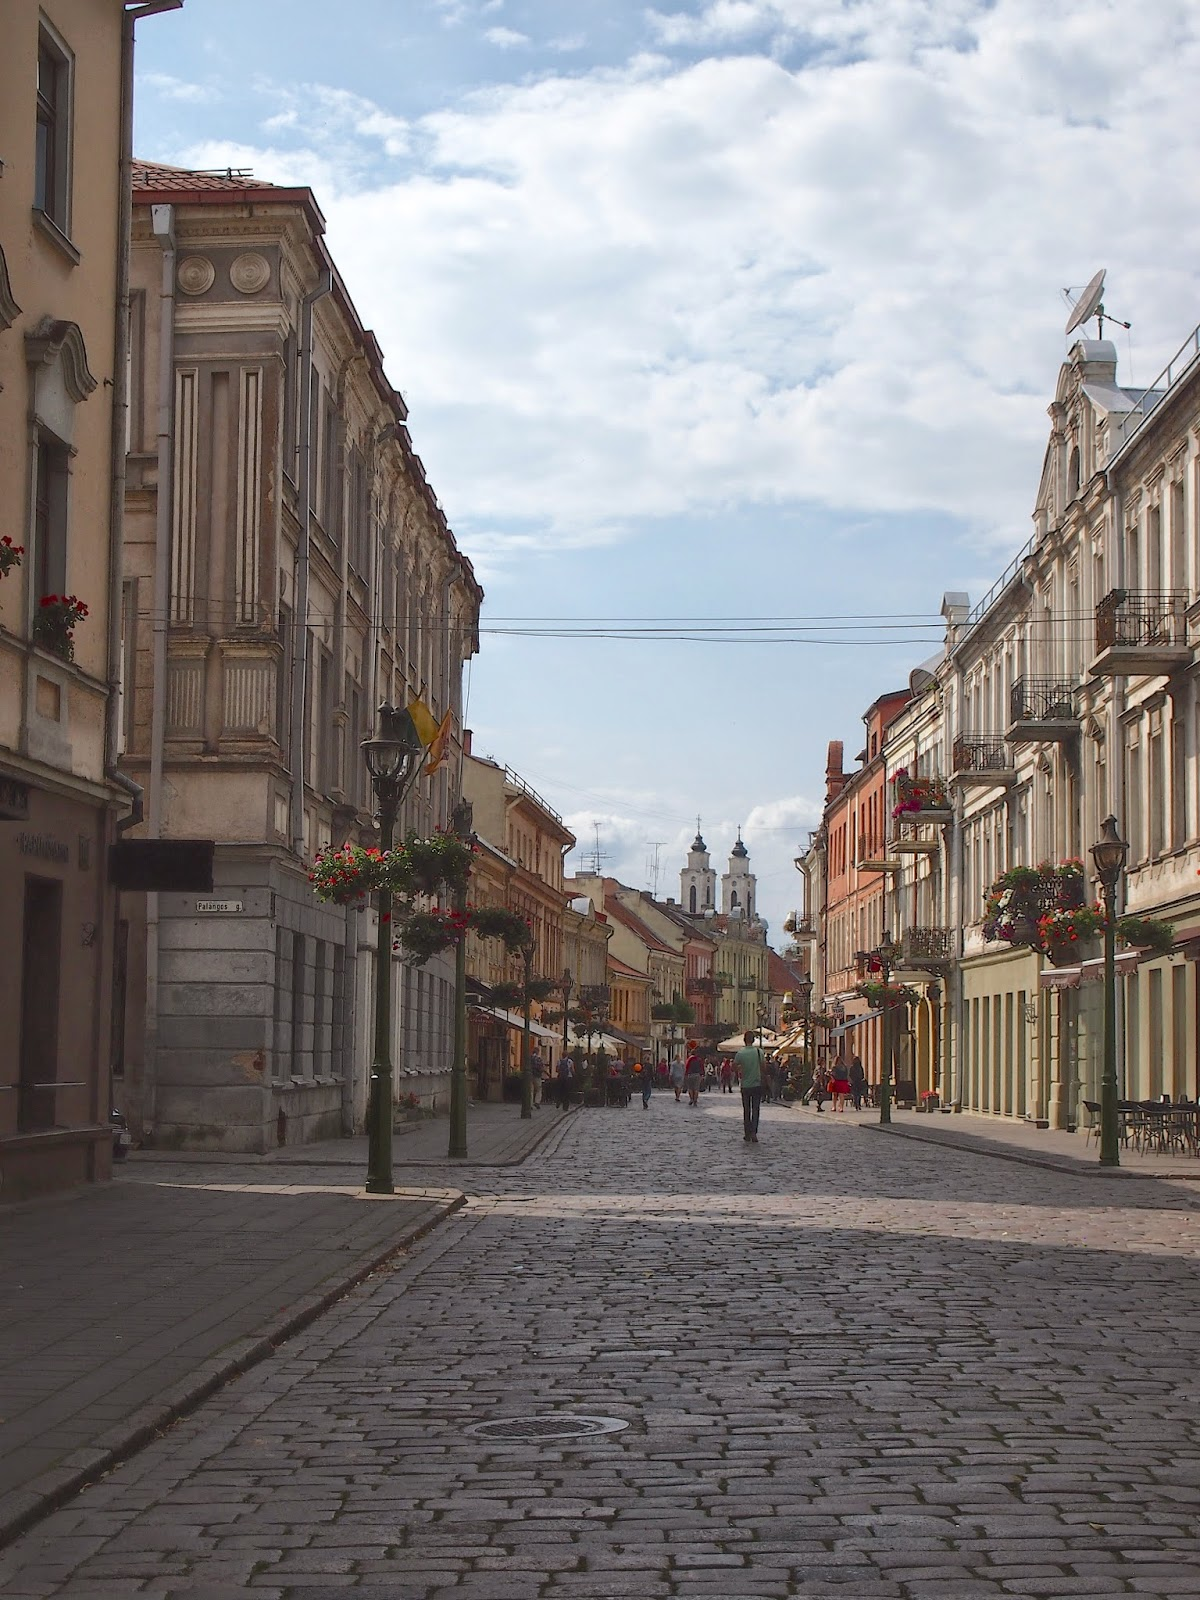 The cobblestone streets of the Kaunas Old Town